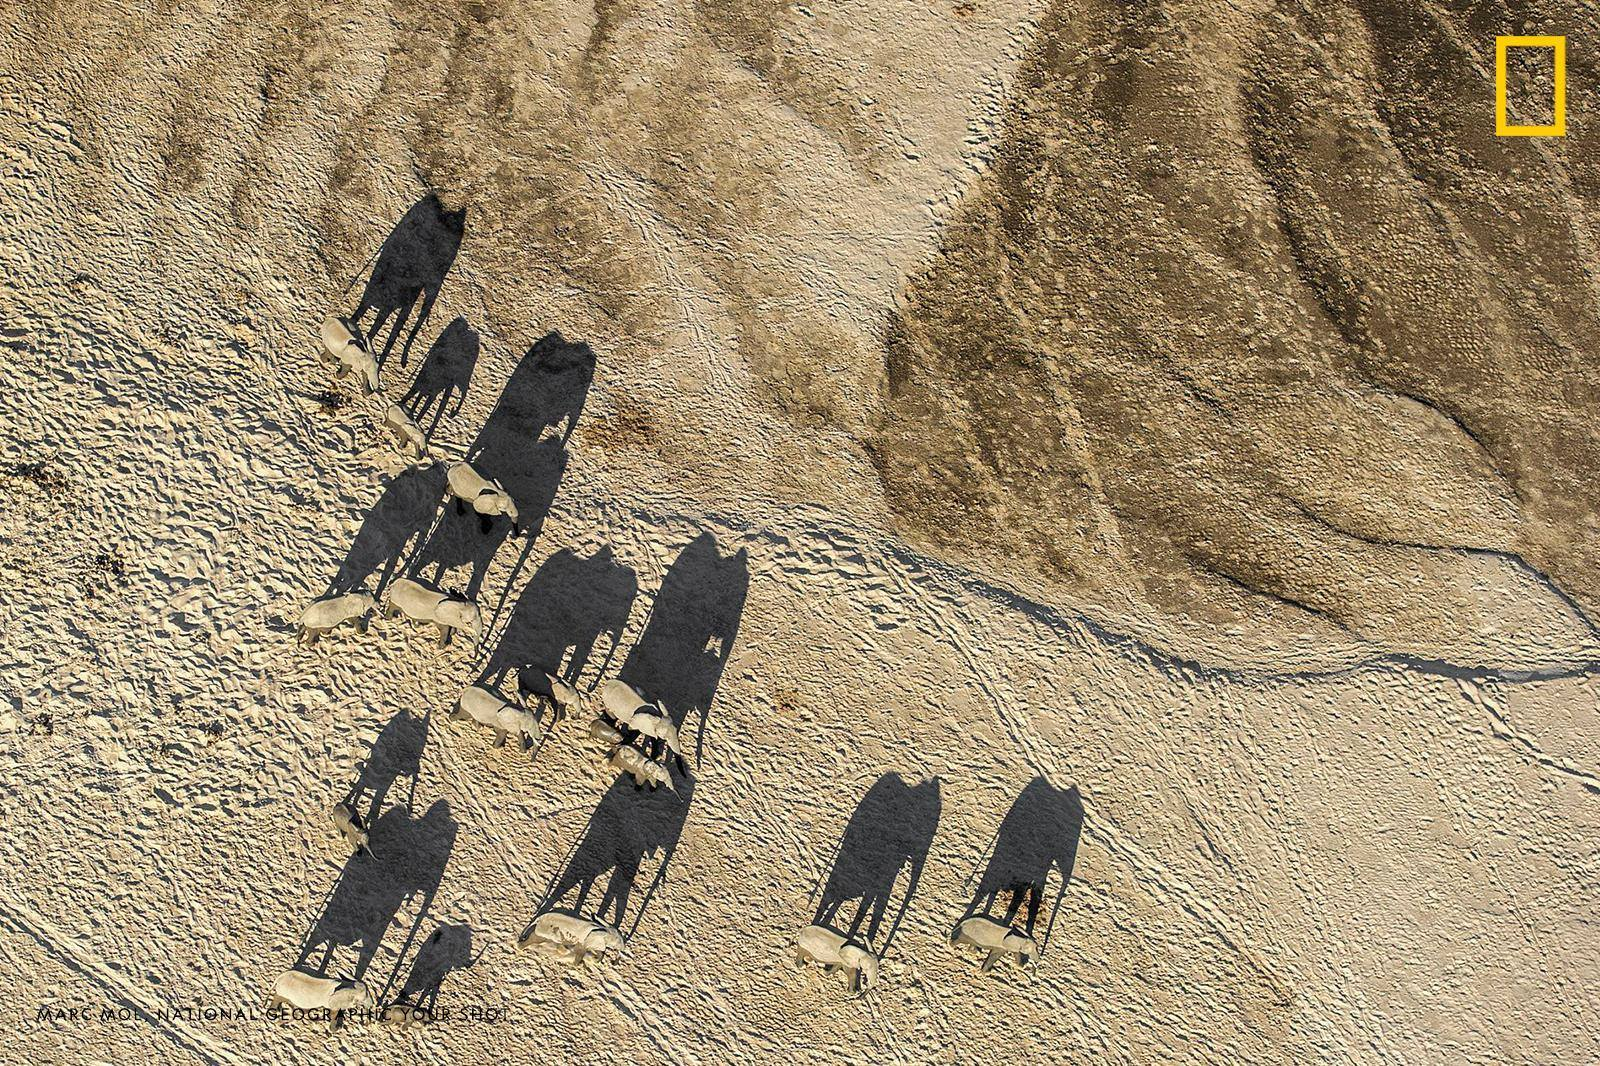 """""""A herd of elephants cast incredible shadows across the dry Luangwa Riveeer floodplain as they journey to the refreshing waters of this dwindling river,"""" writes Your Shot photographer Marc Mol. https://on.natgeo.com/2K13wcg"""